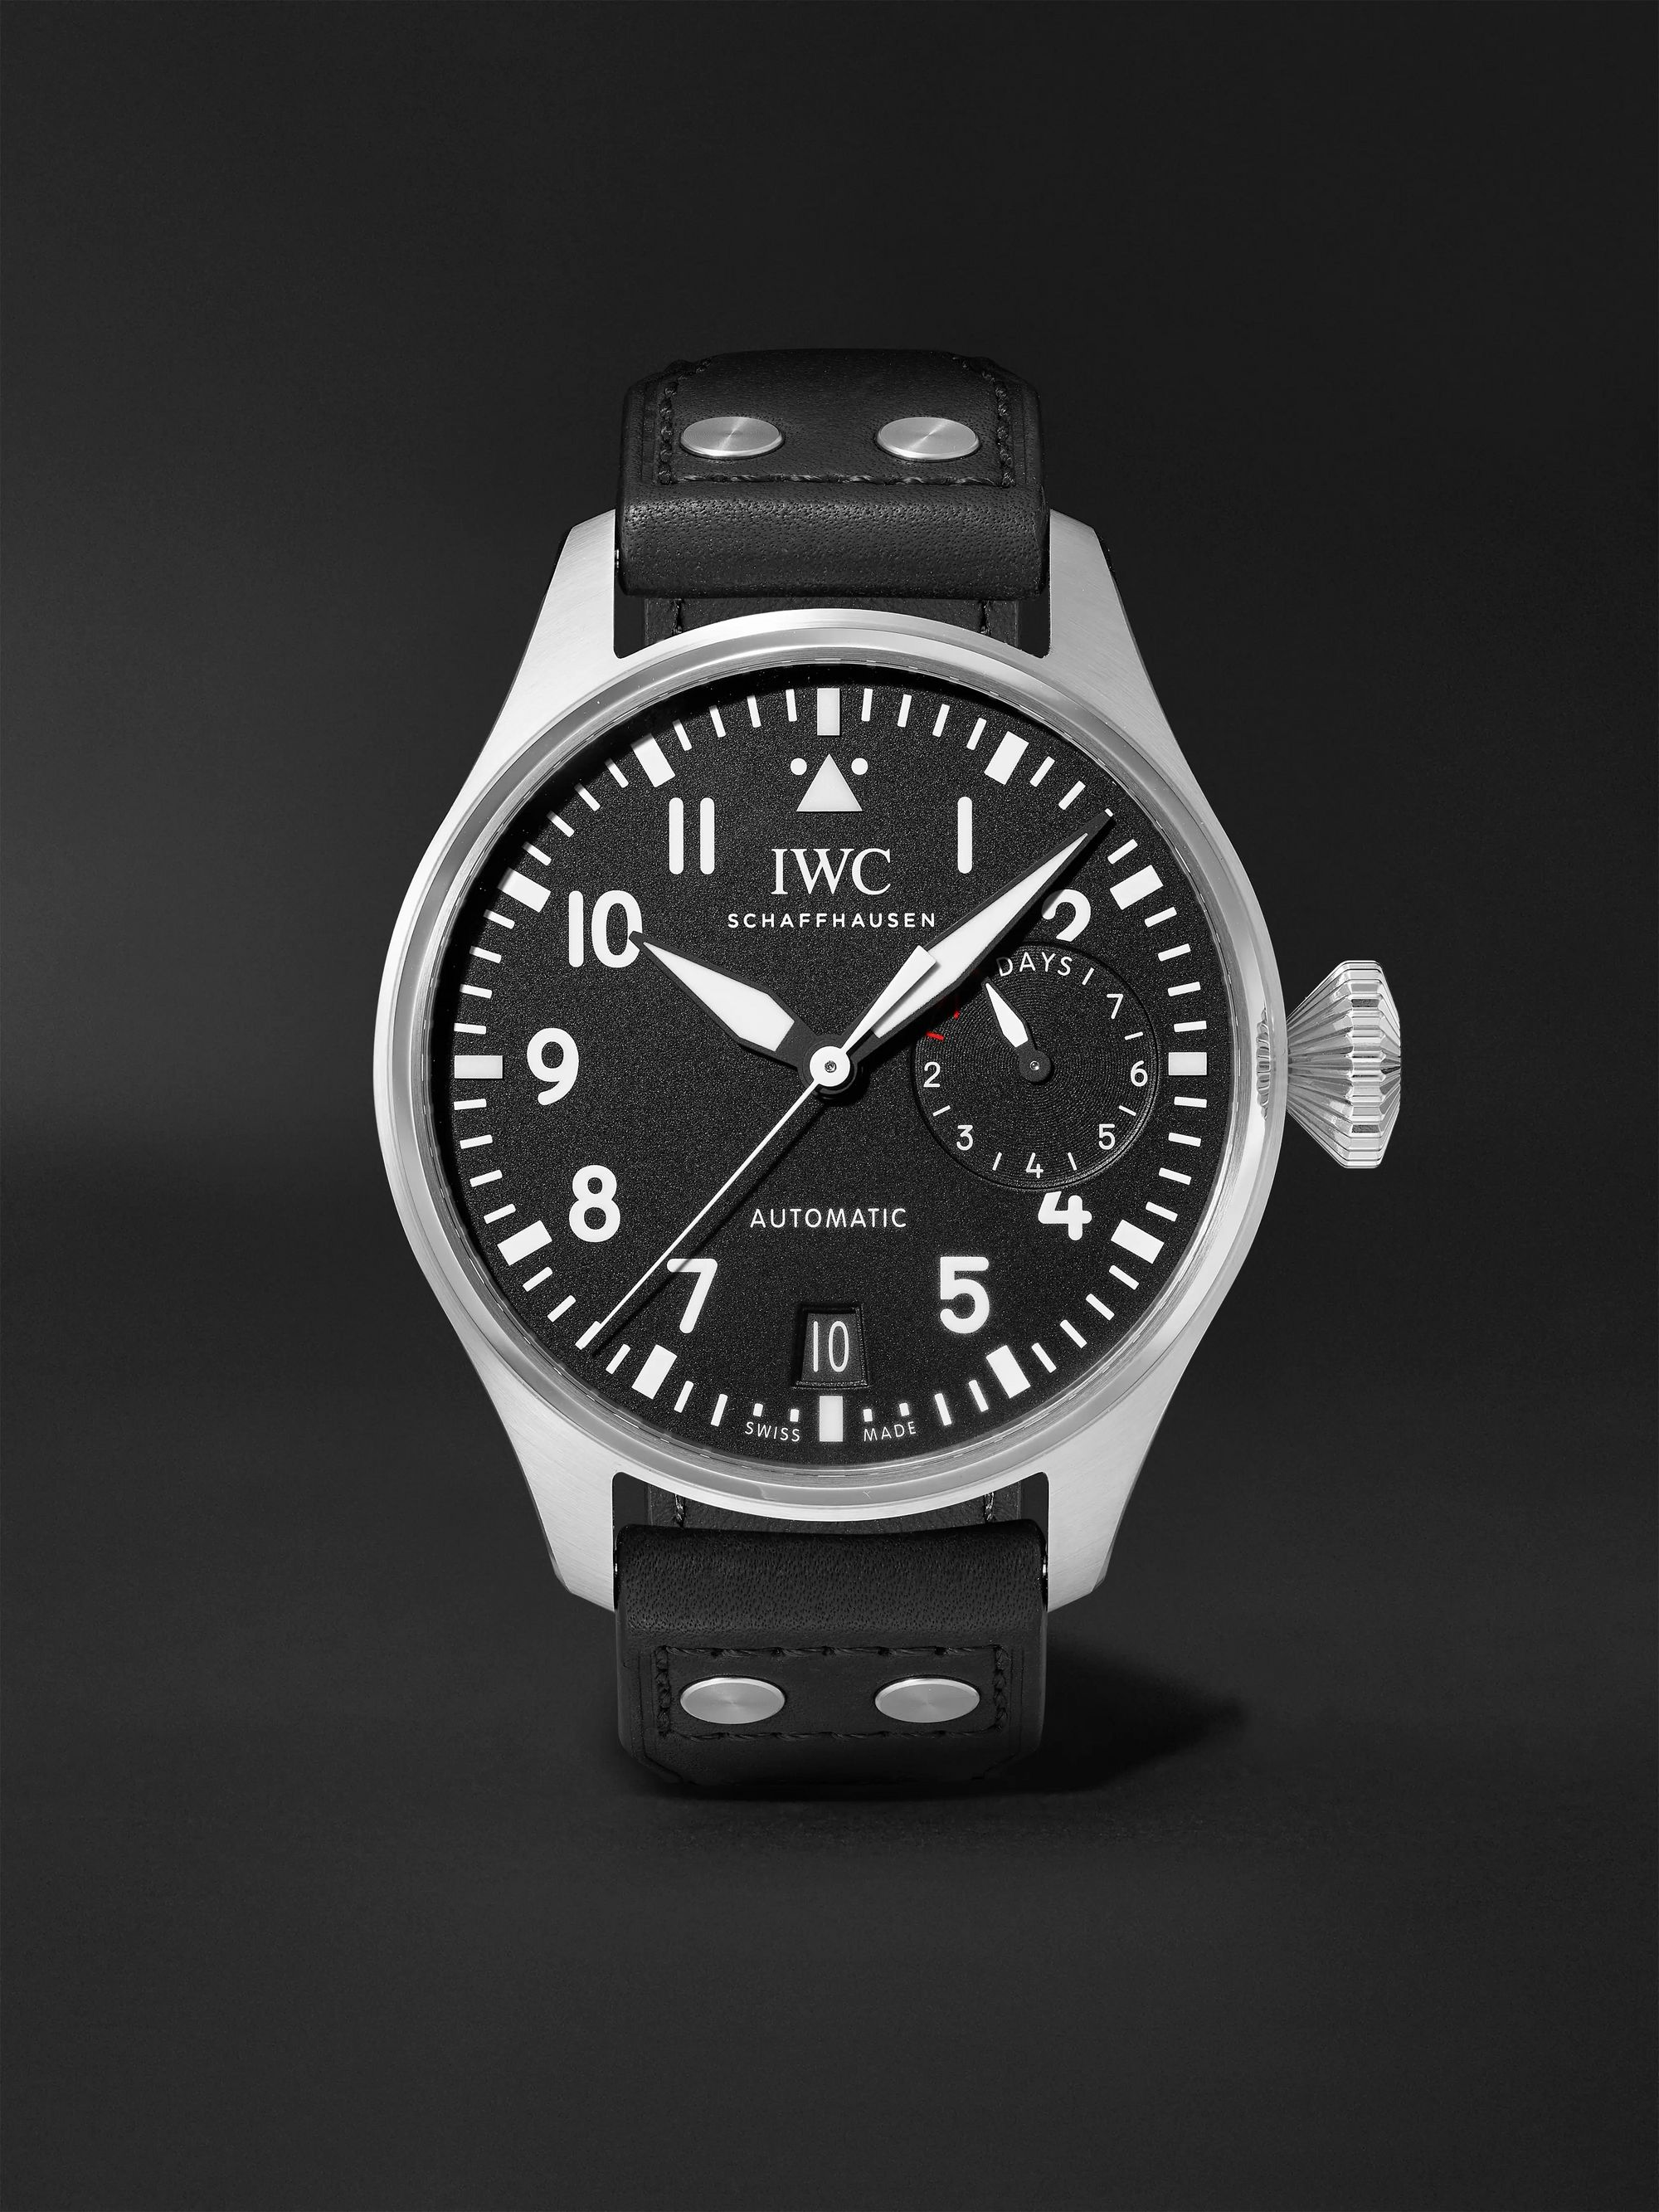 IWC SCHAFFHAUSEN Big Pilot's Automatic 46.2mm Stainless Steel and Leather Watch, Ref. No. IW501001